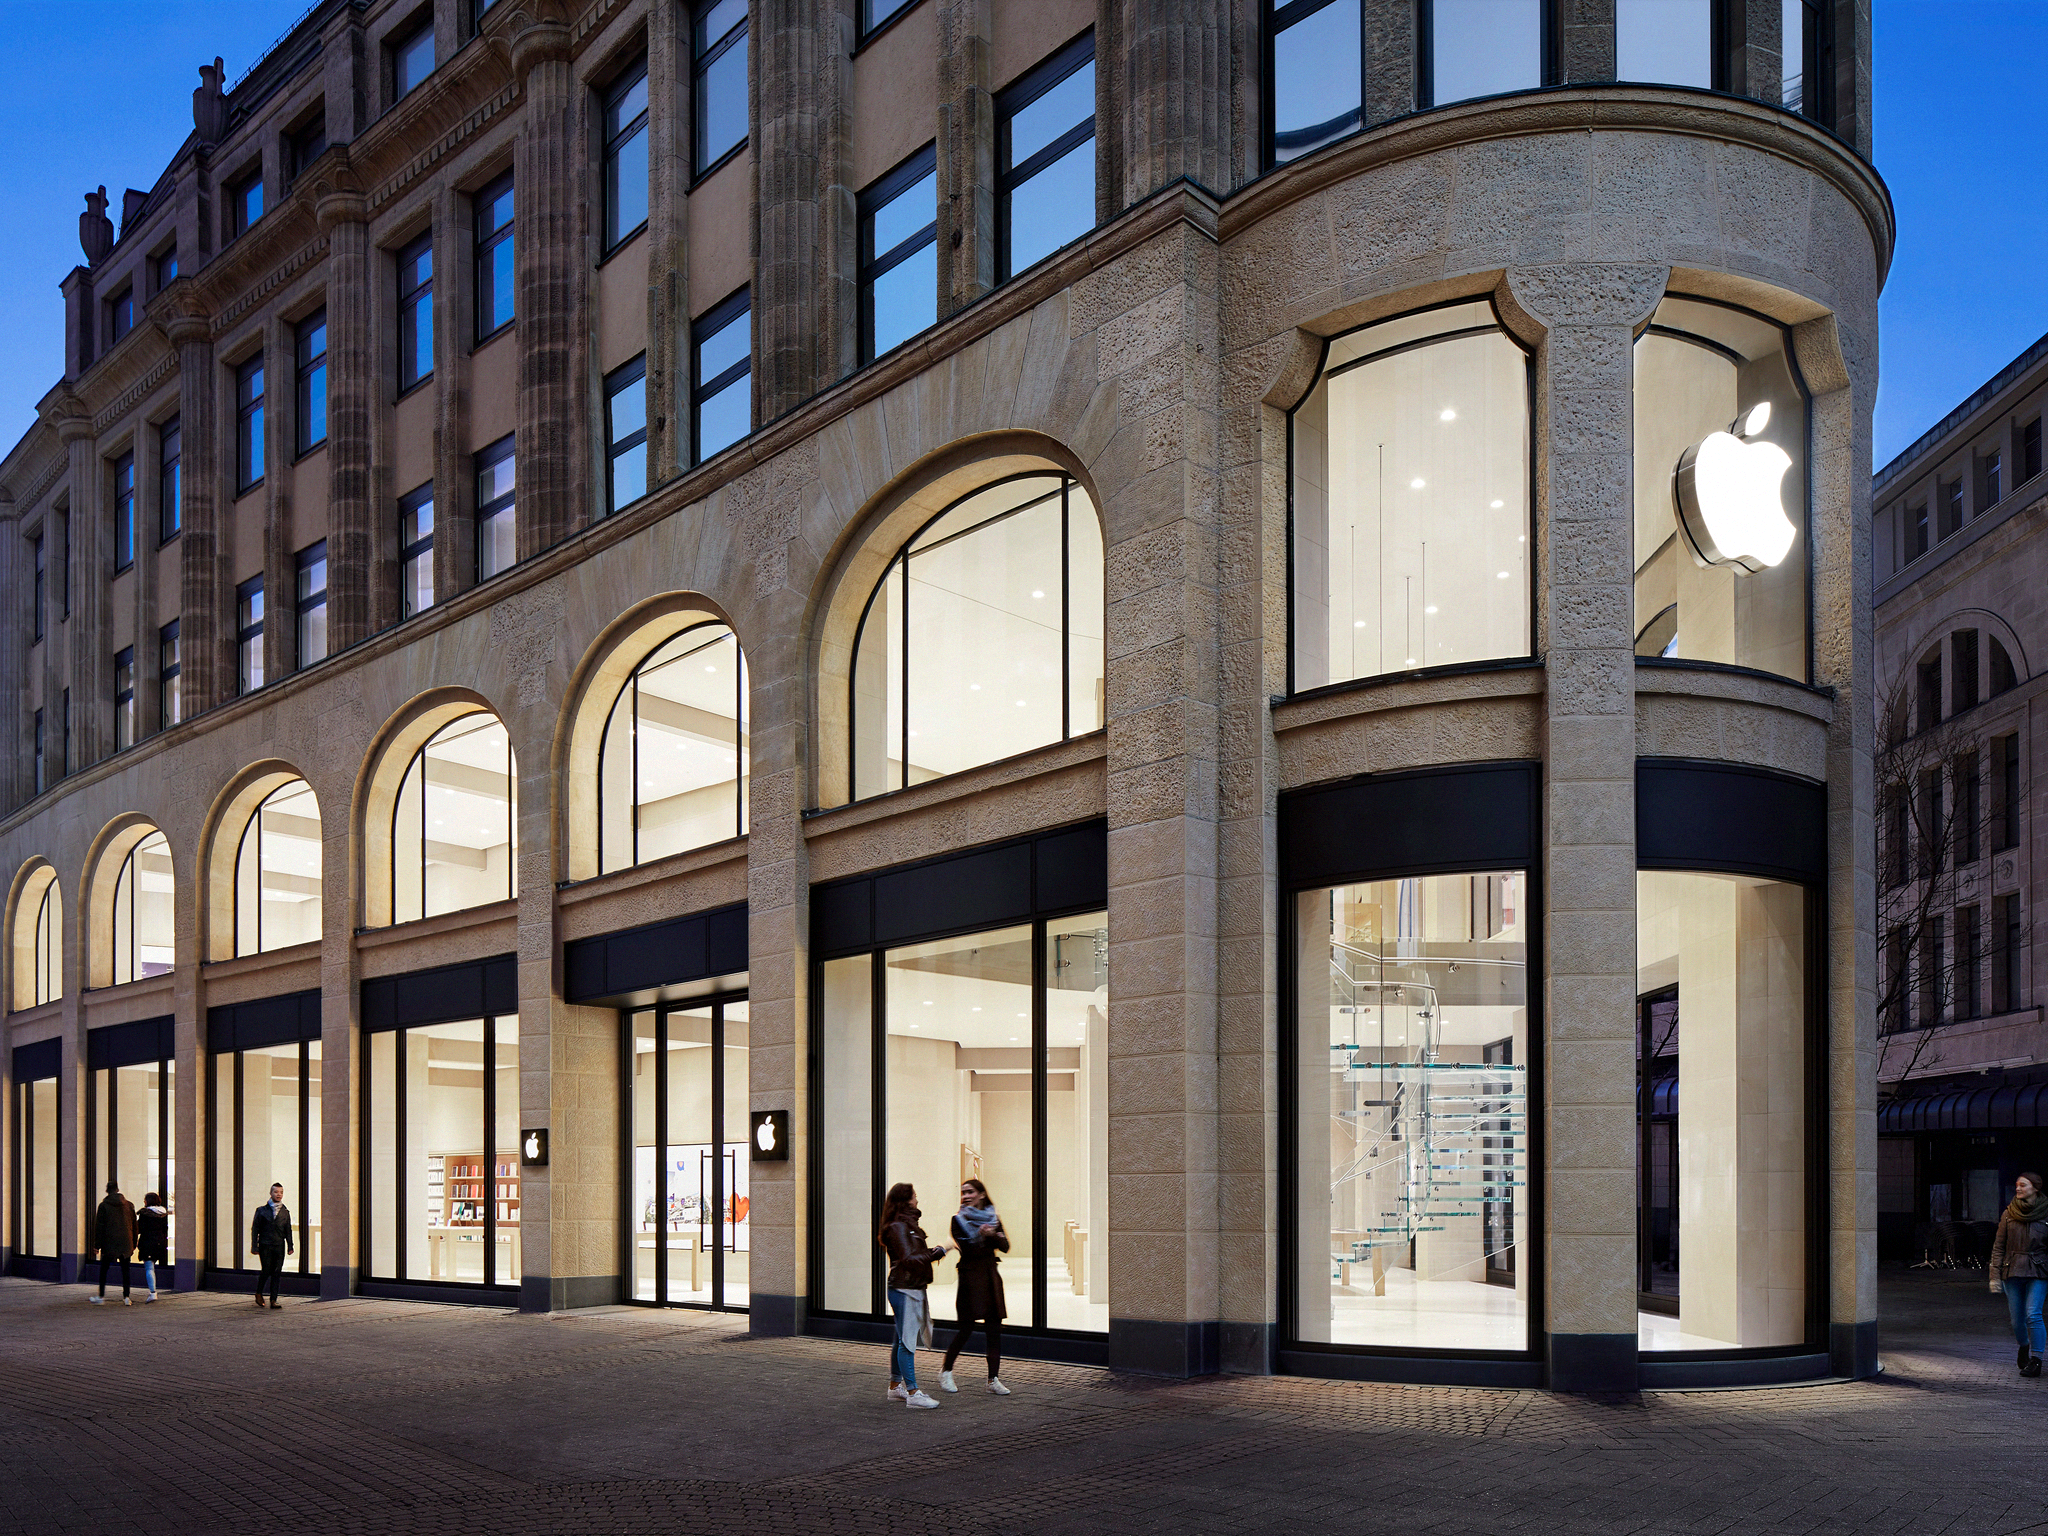 Apple Schildergasse, Schildergasse 1-9 in Köln